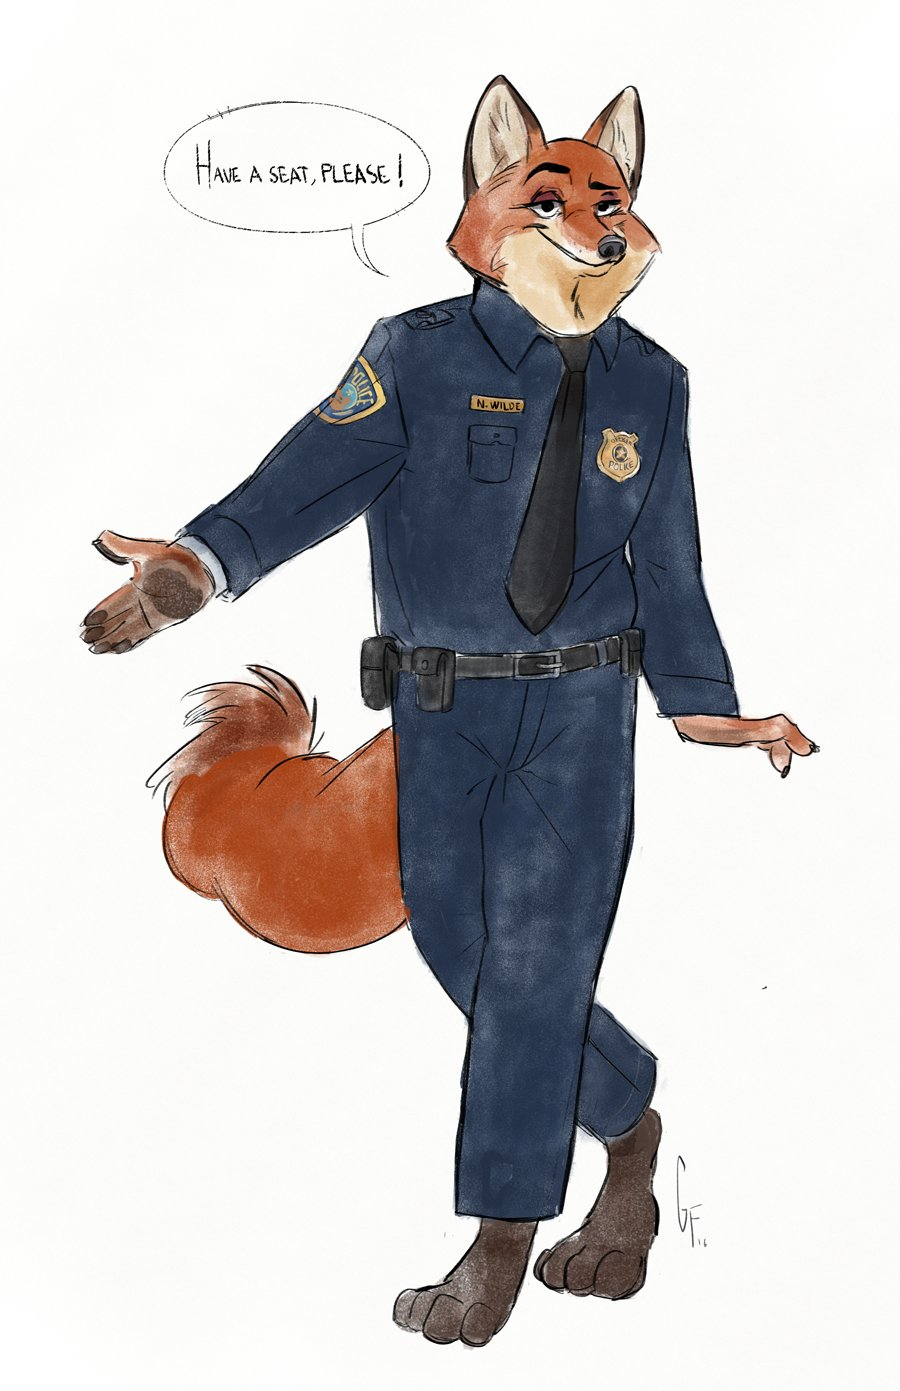 e926 anthro canine clothed clothing disney fox fur gamutfeathers hi_res male mammal nick_wilde police_uniform simple_background solo uniform white_background zootopia